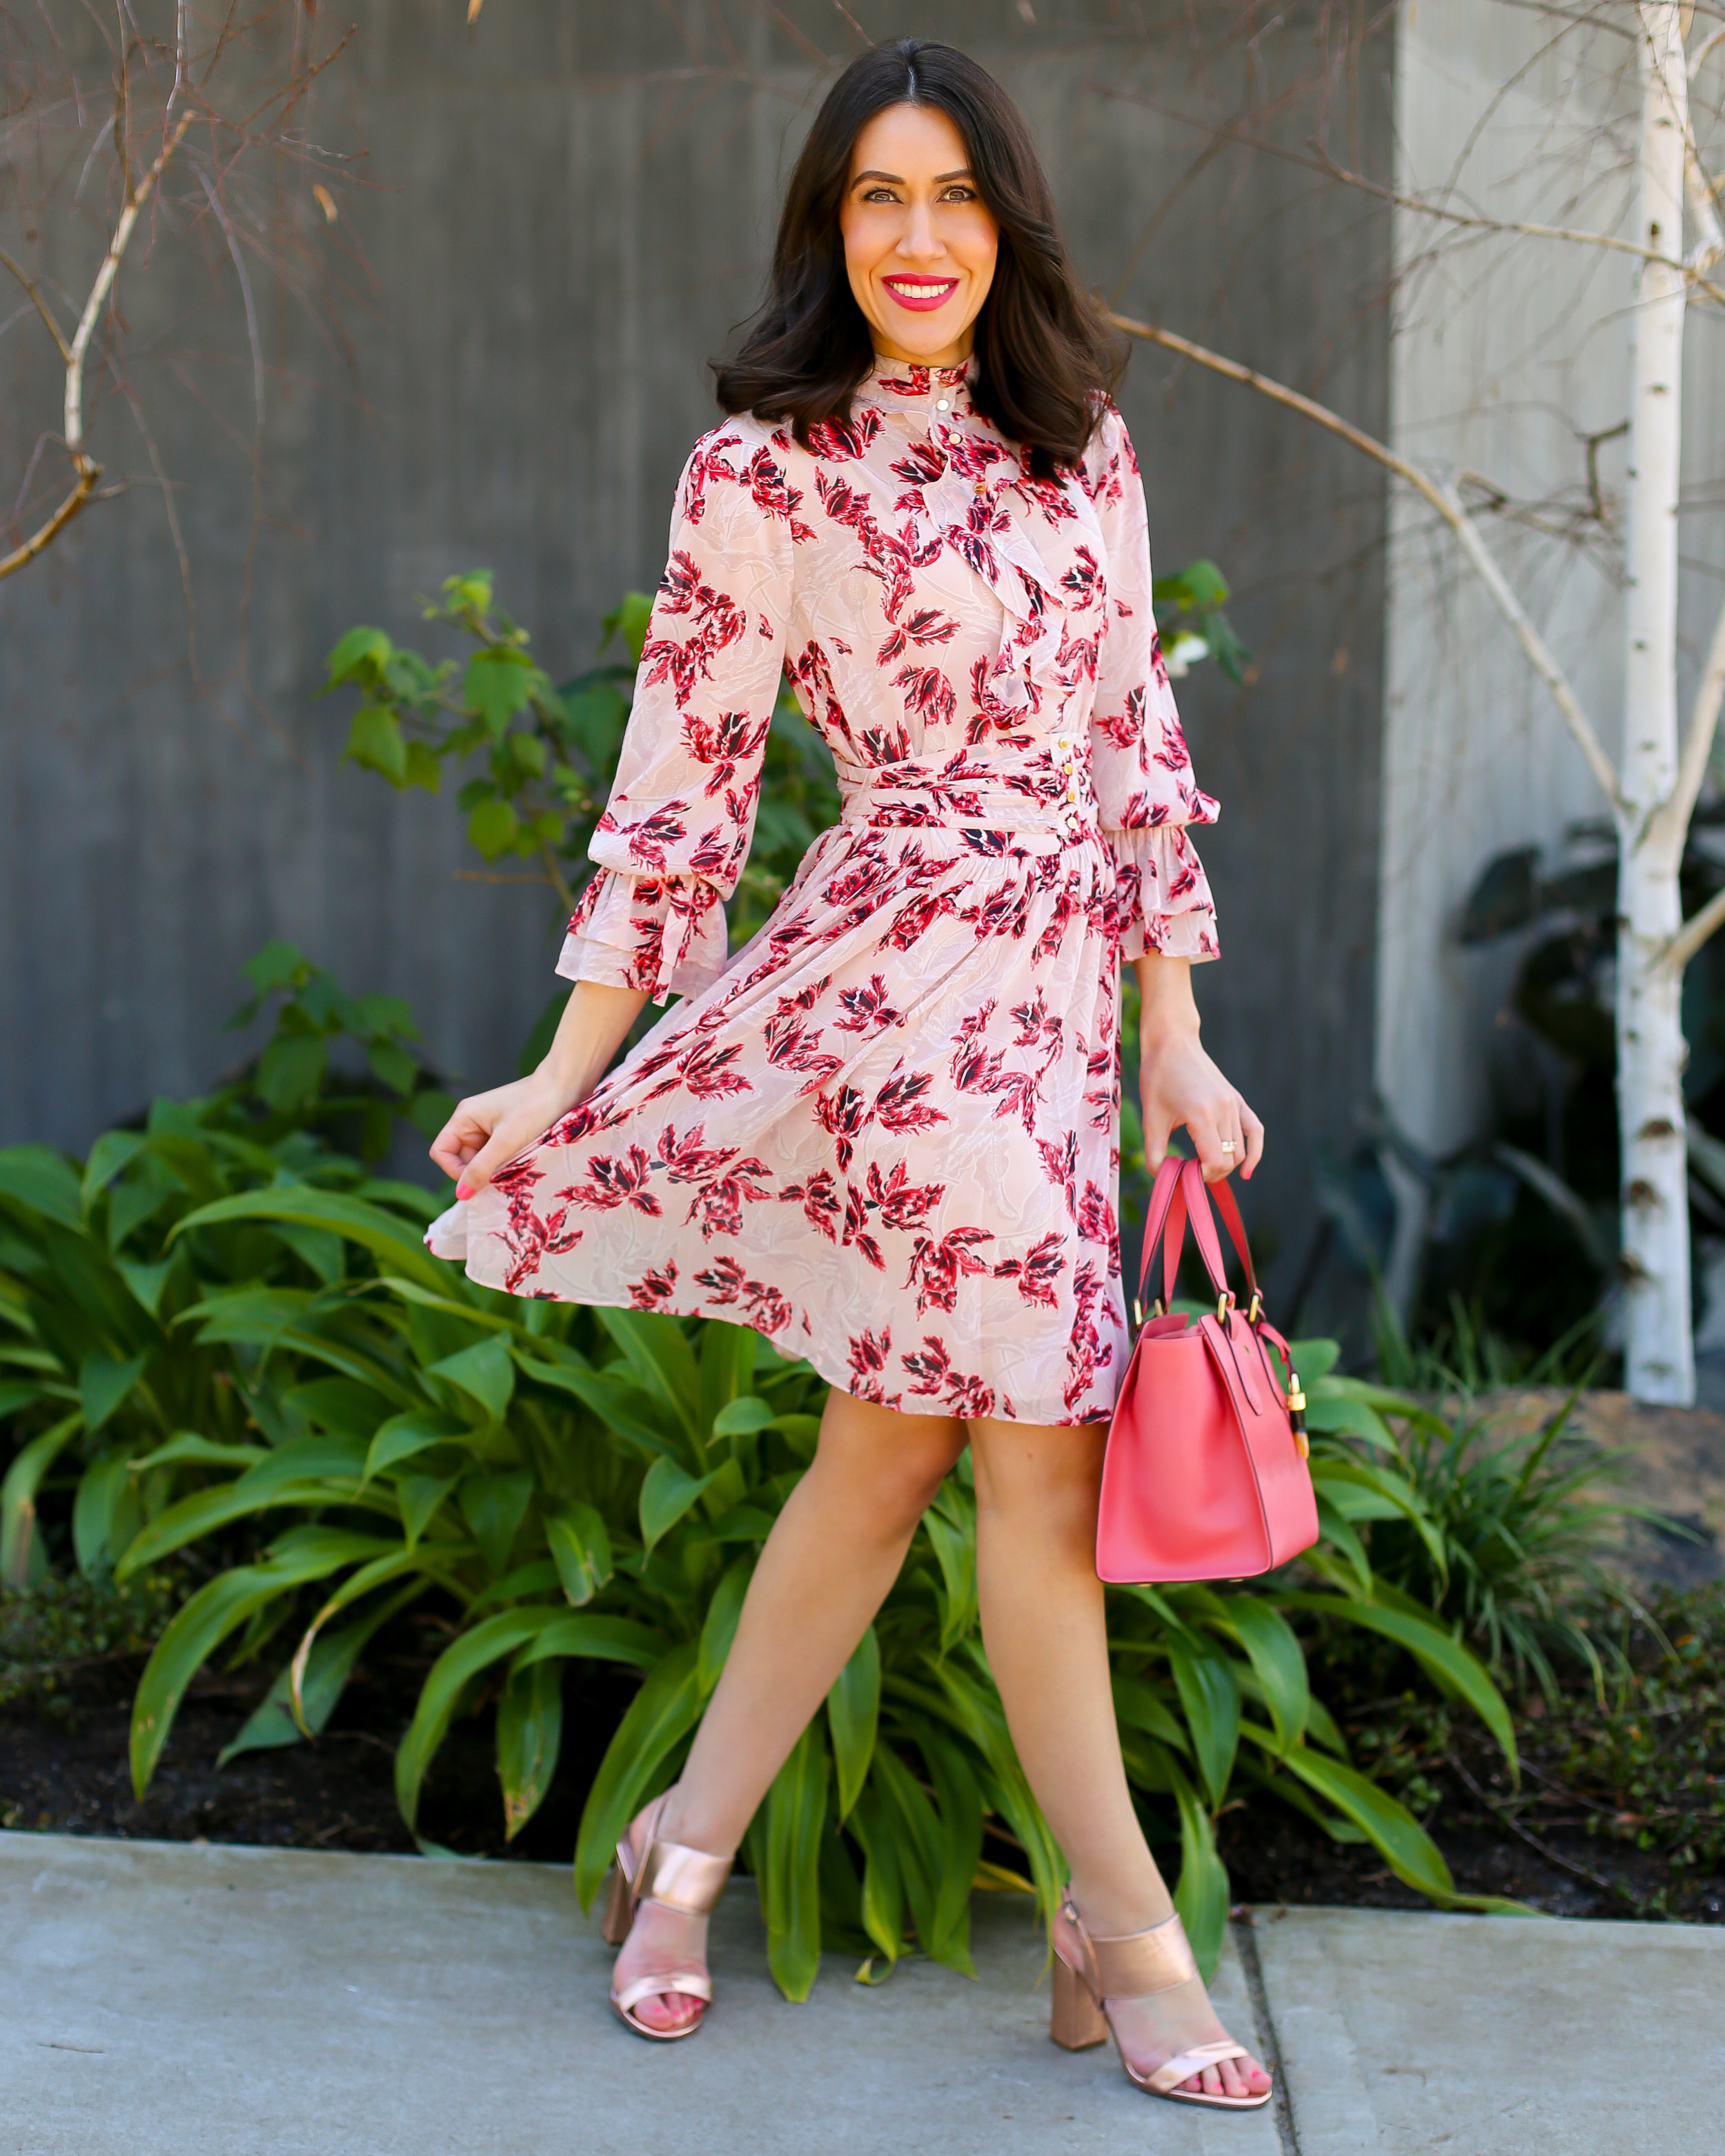 Lisa wears - Dress  by  Saba , Shoes  by  Mollini , Bag  by  Braun Buffel  (all available at  Collins234 )